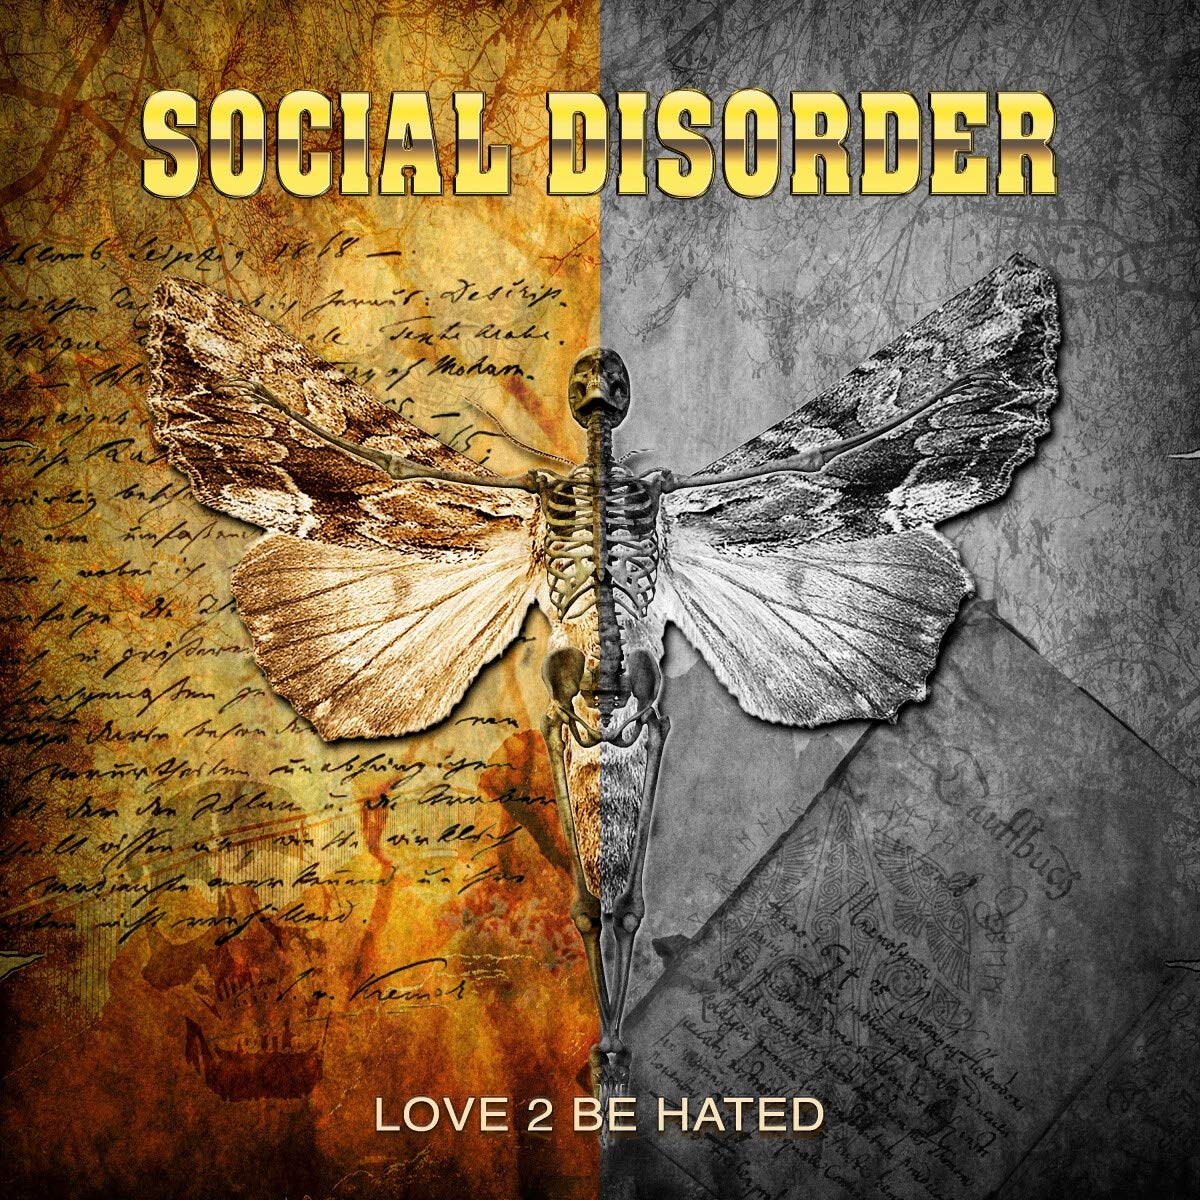 Social Disorder - Love 2 Be Hated (2021) [FLAC] Download